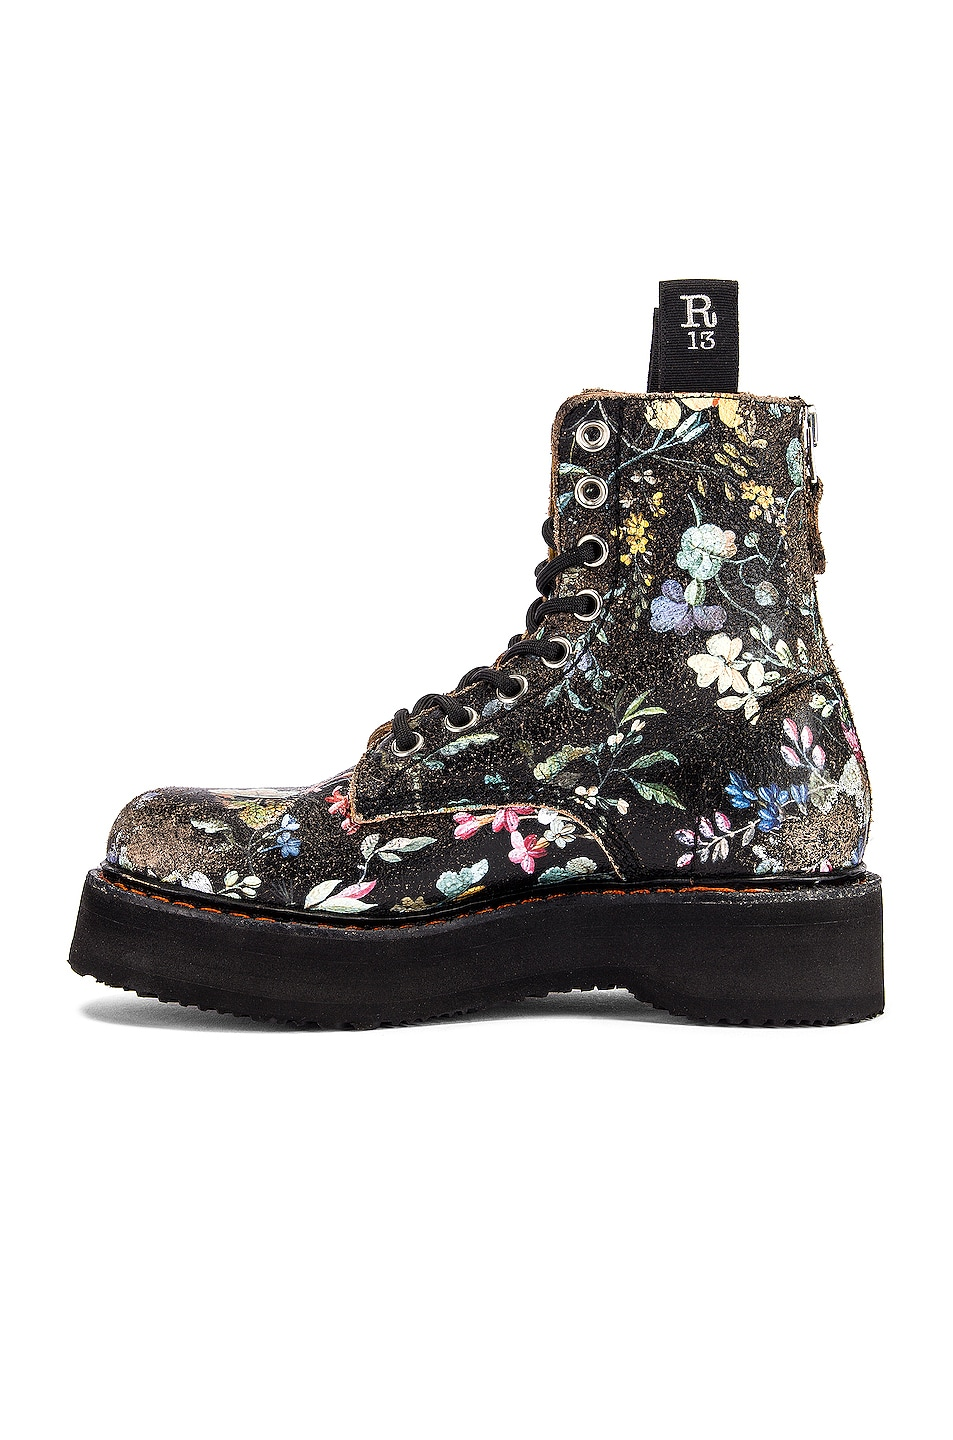 Image 5 of R13 Single Stacked Lace Up Boots in Cracked WK6 Floral